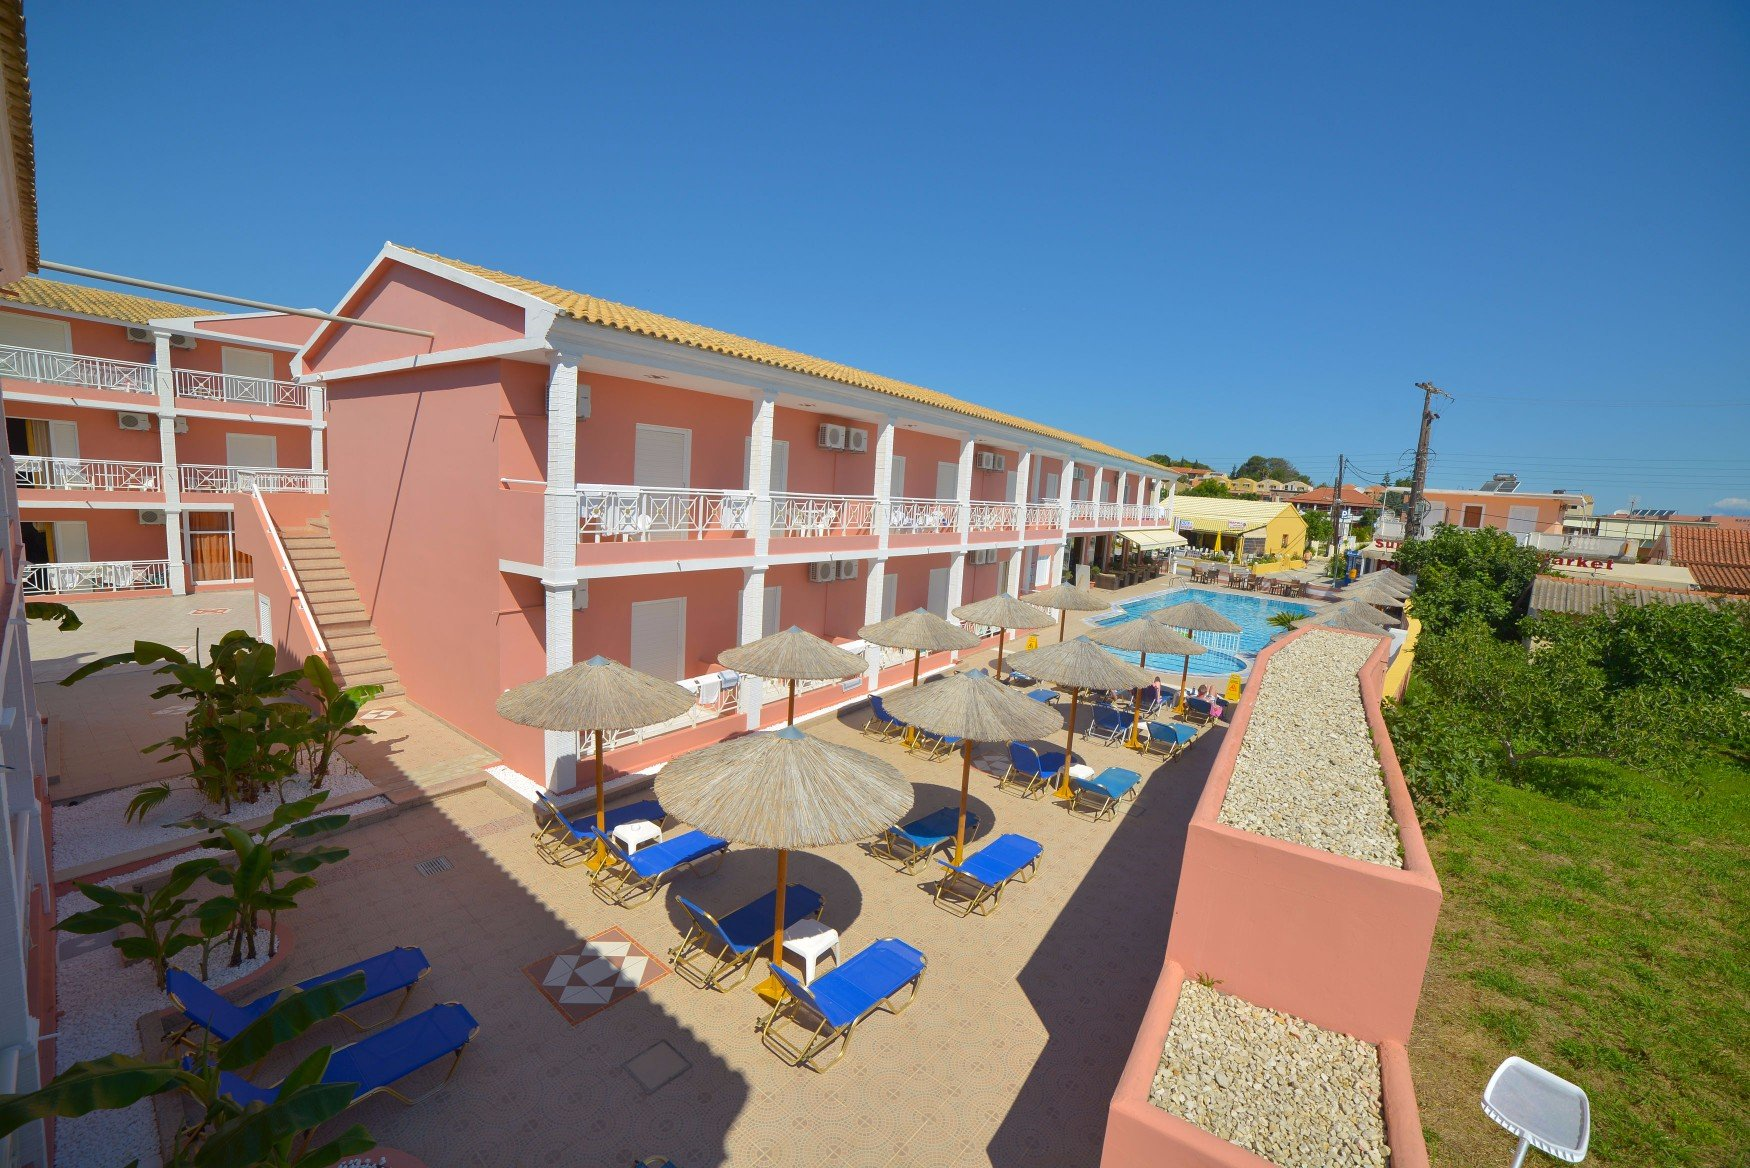 angelina-hotel-sidari-corfu-pool-view-1